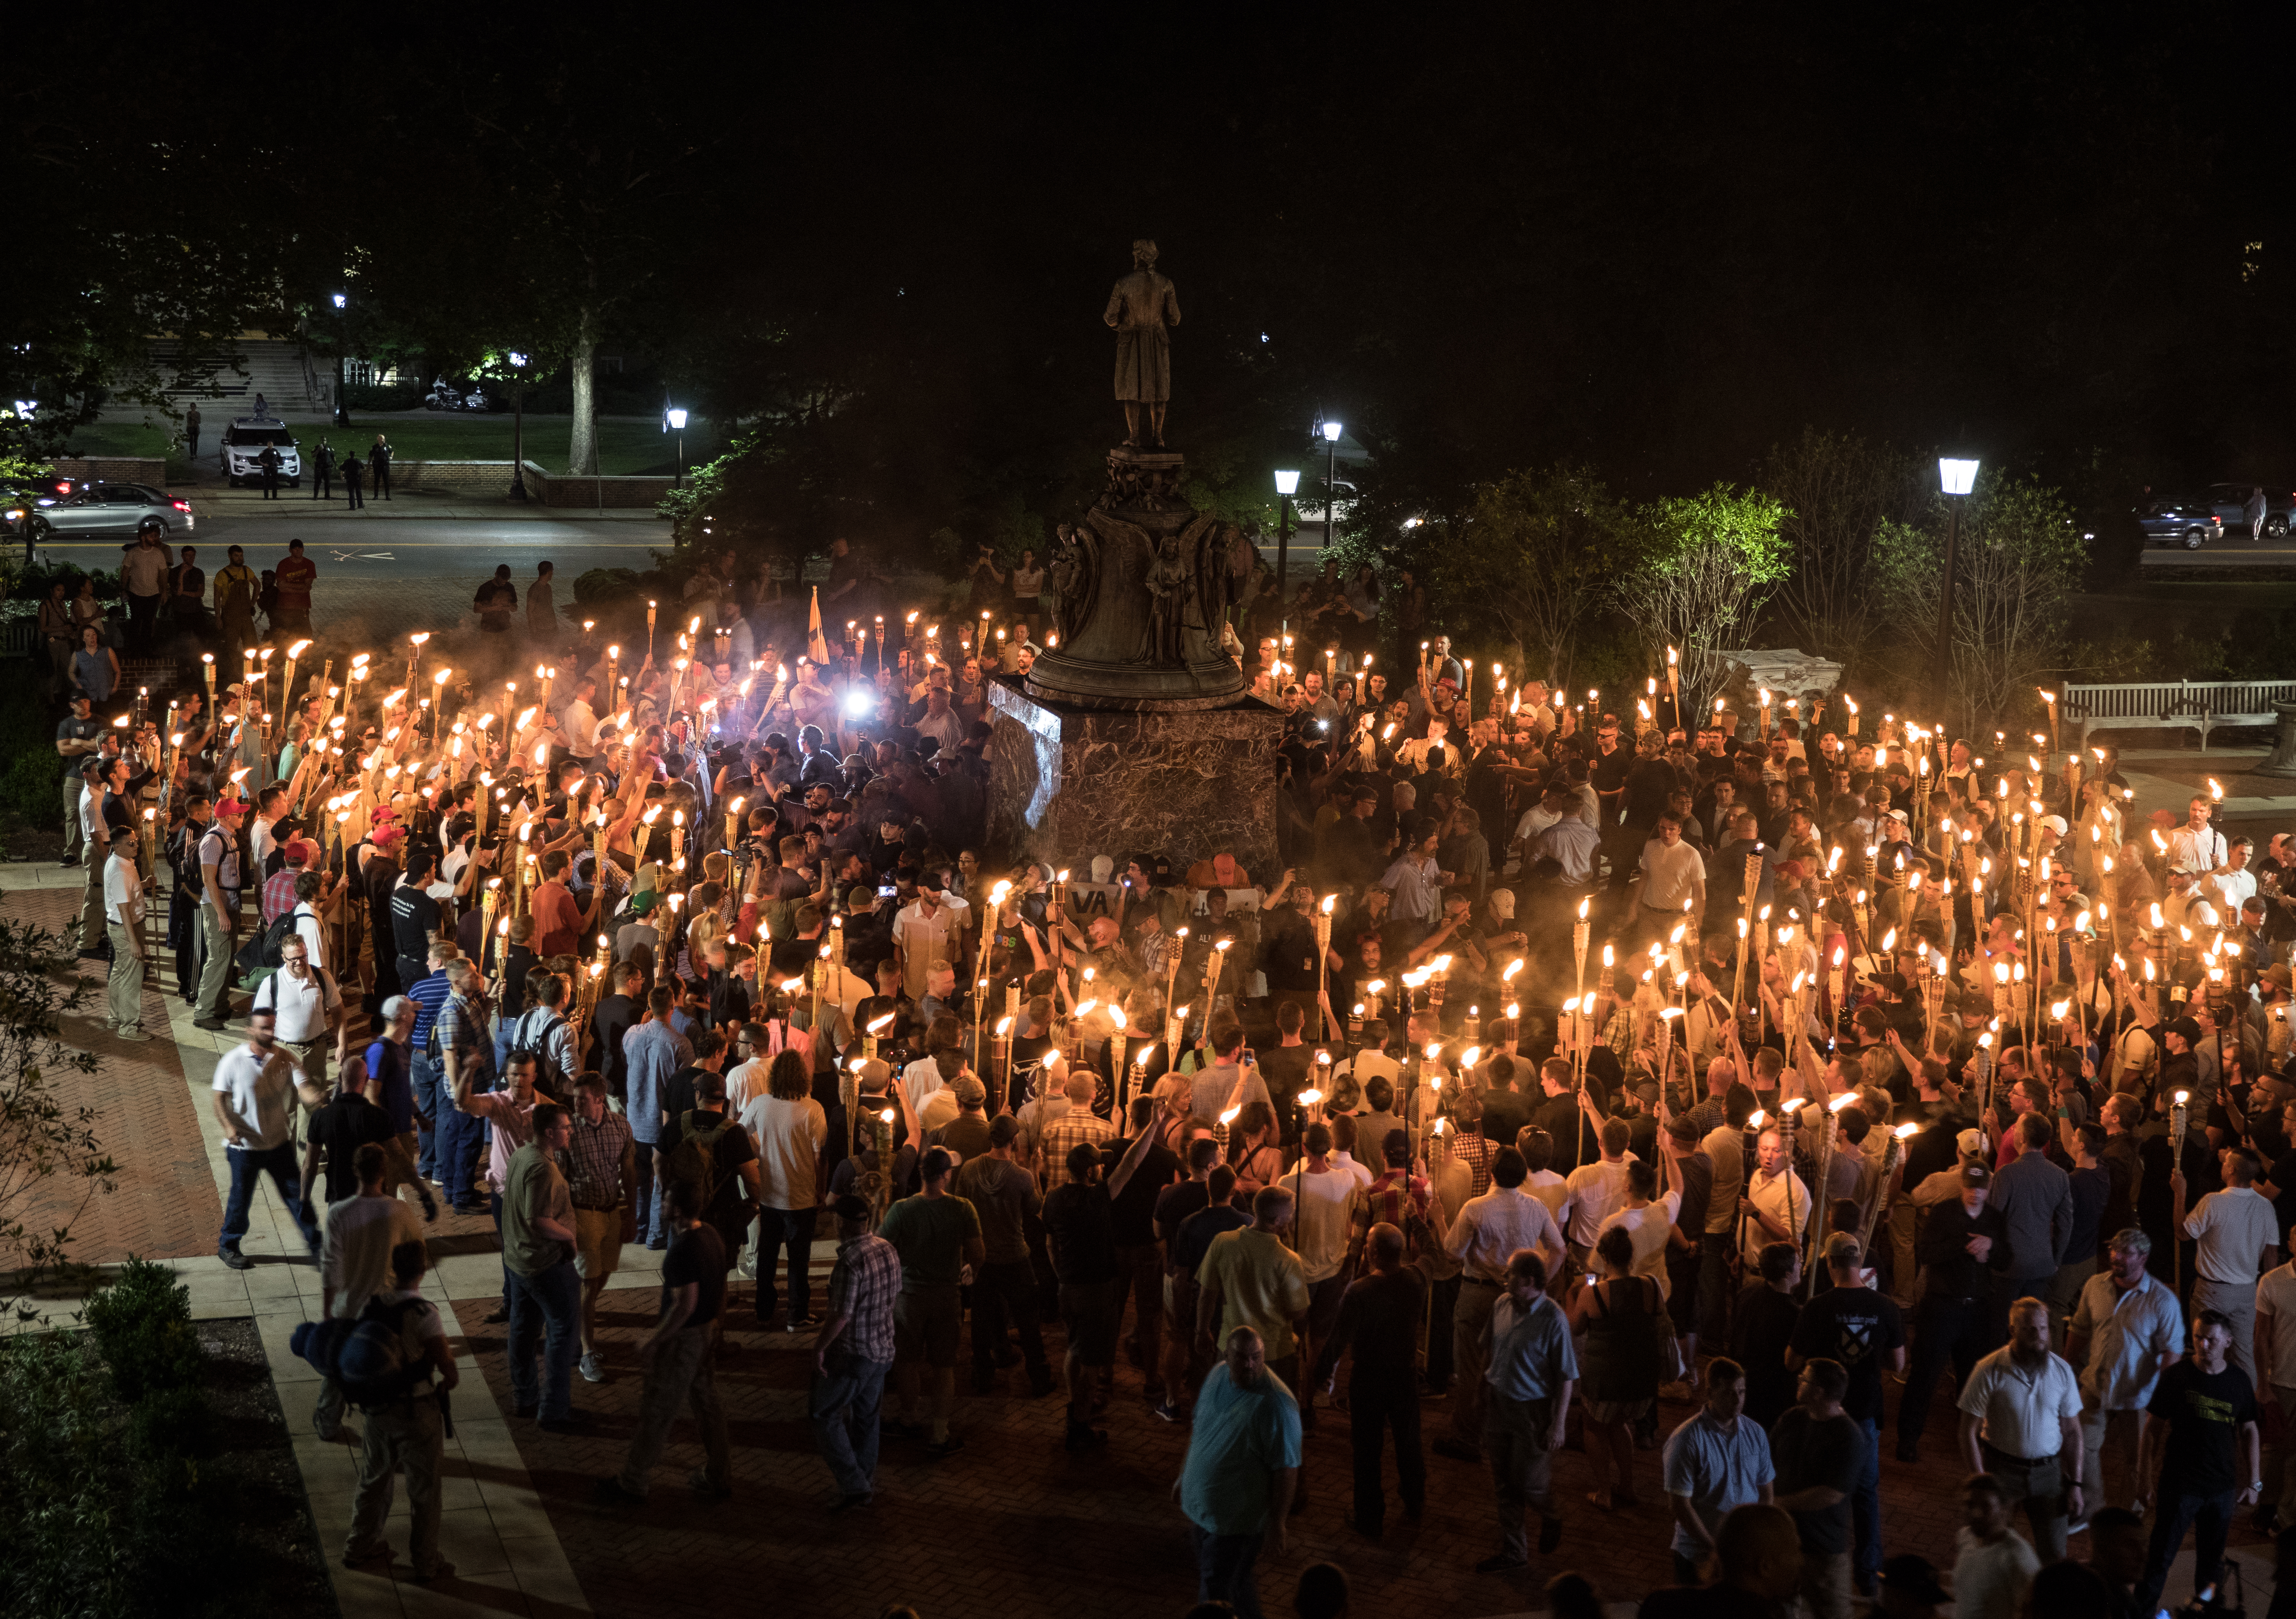 Torch march of white nationalists